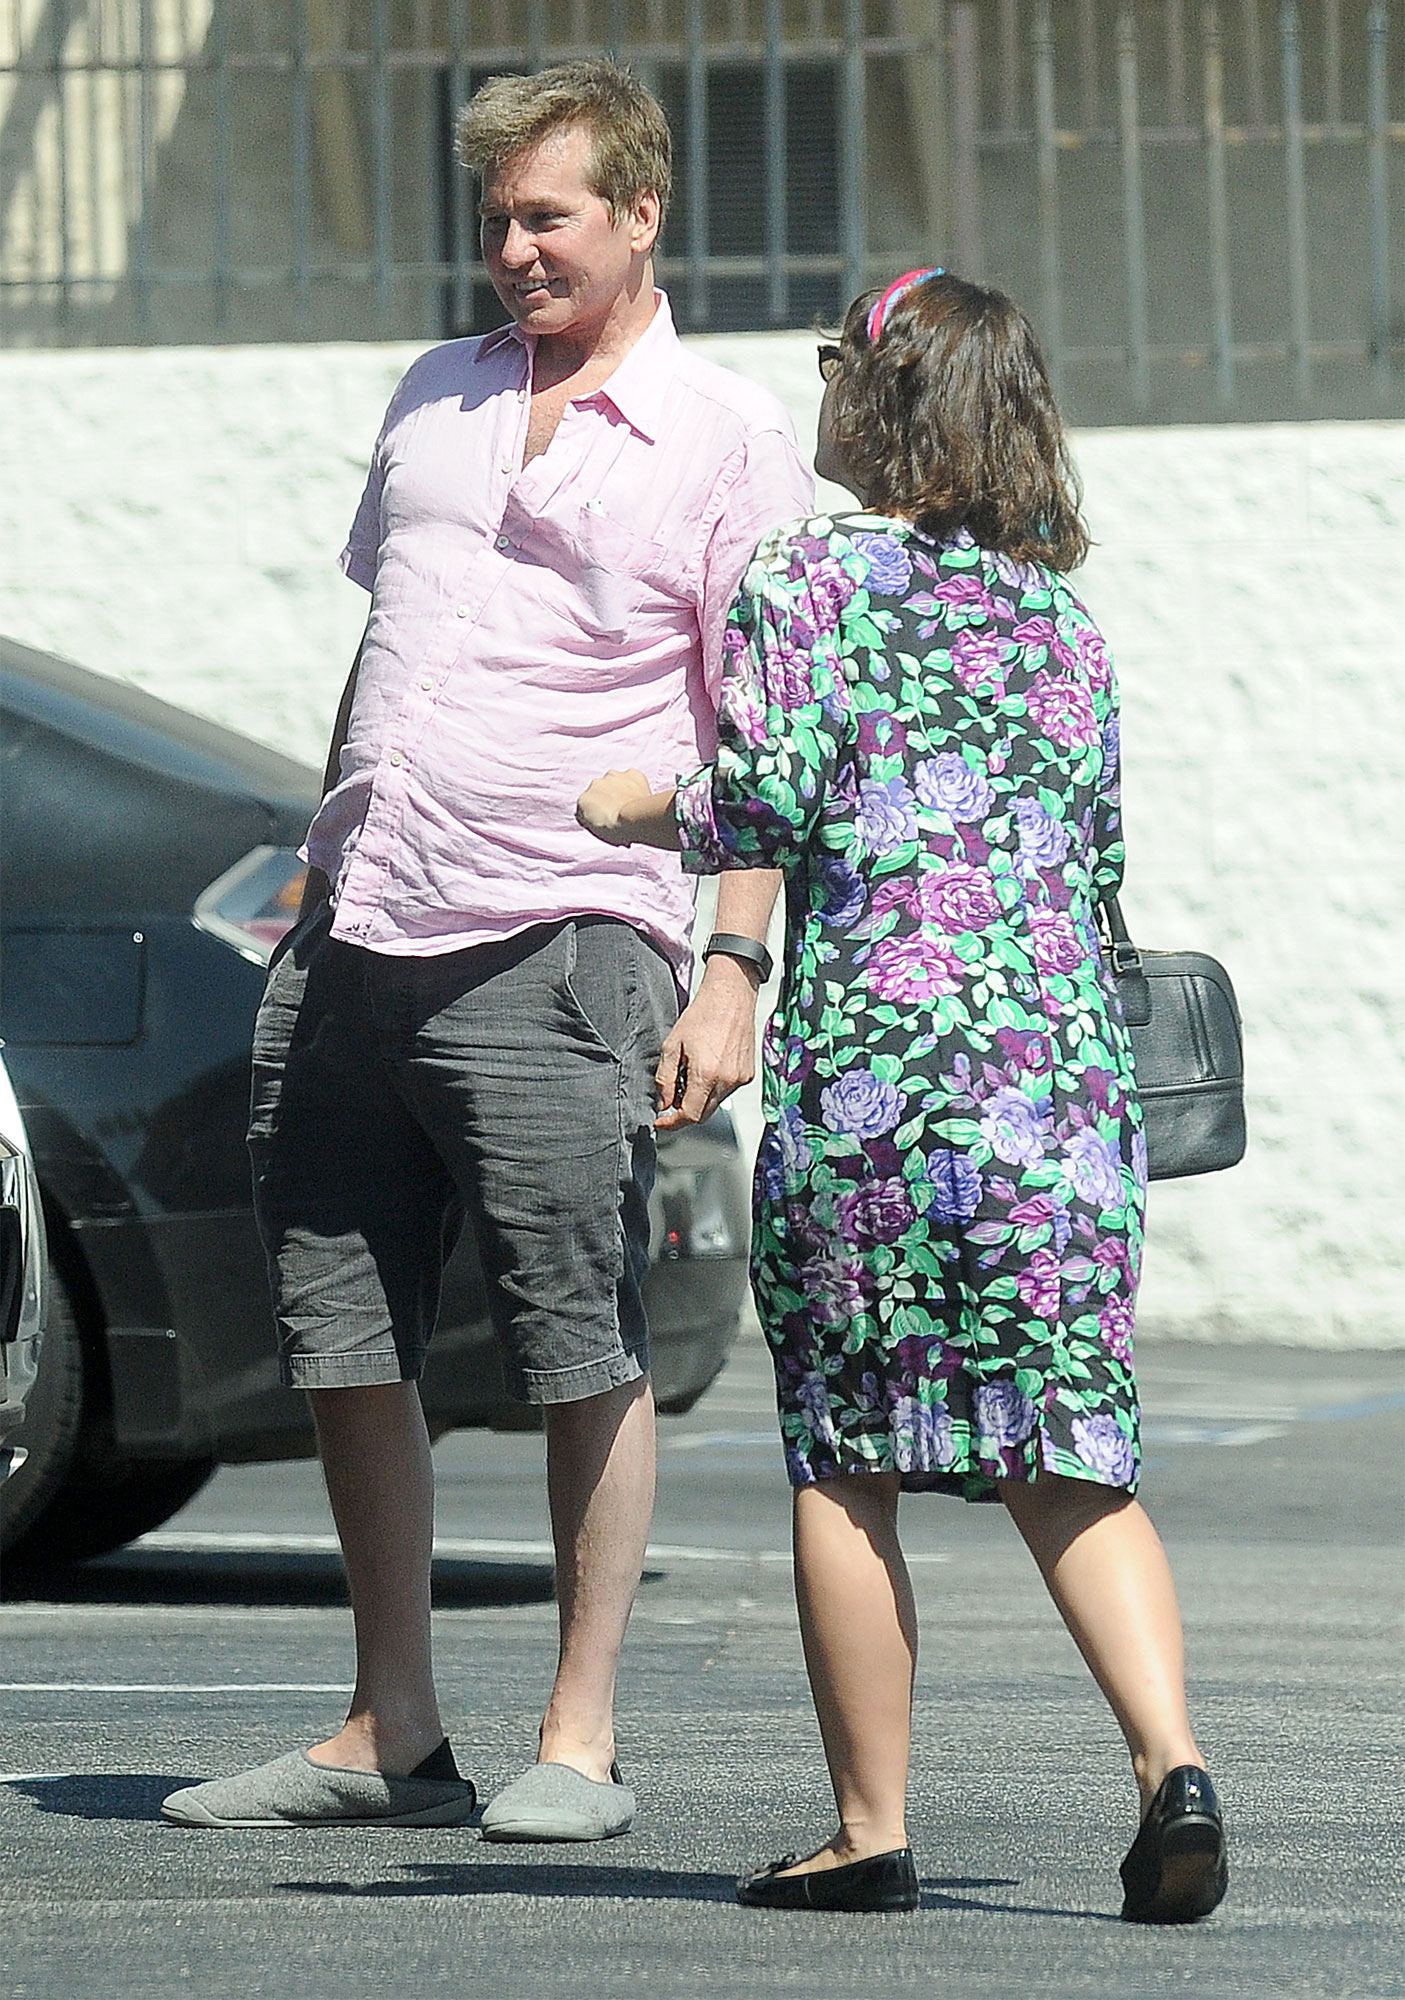 Actor Val Kilmer enjoys time with his daughter Mercedes